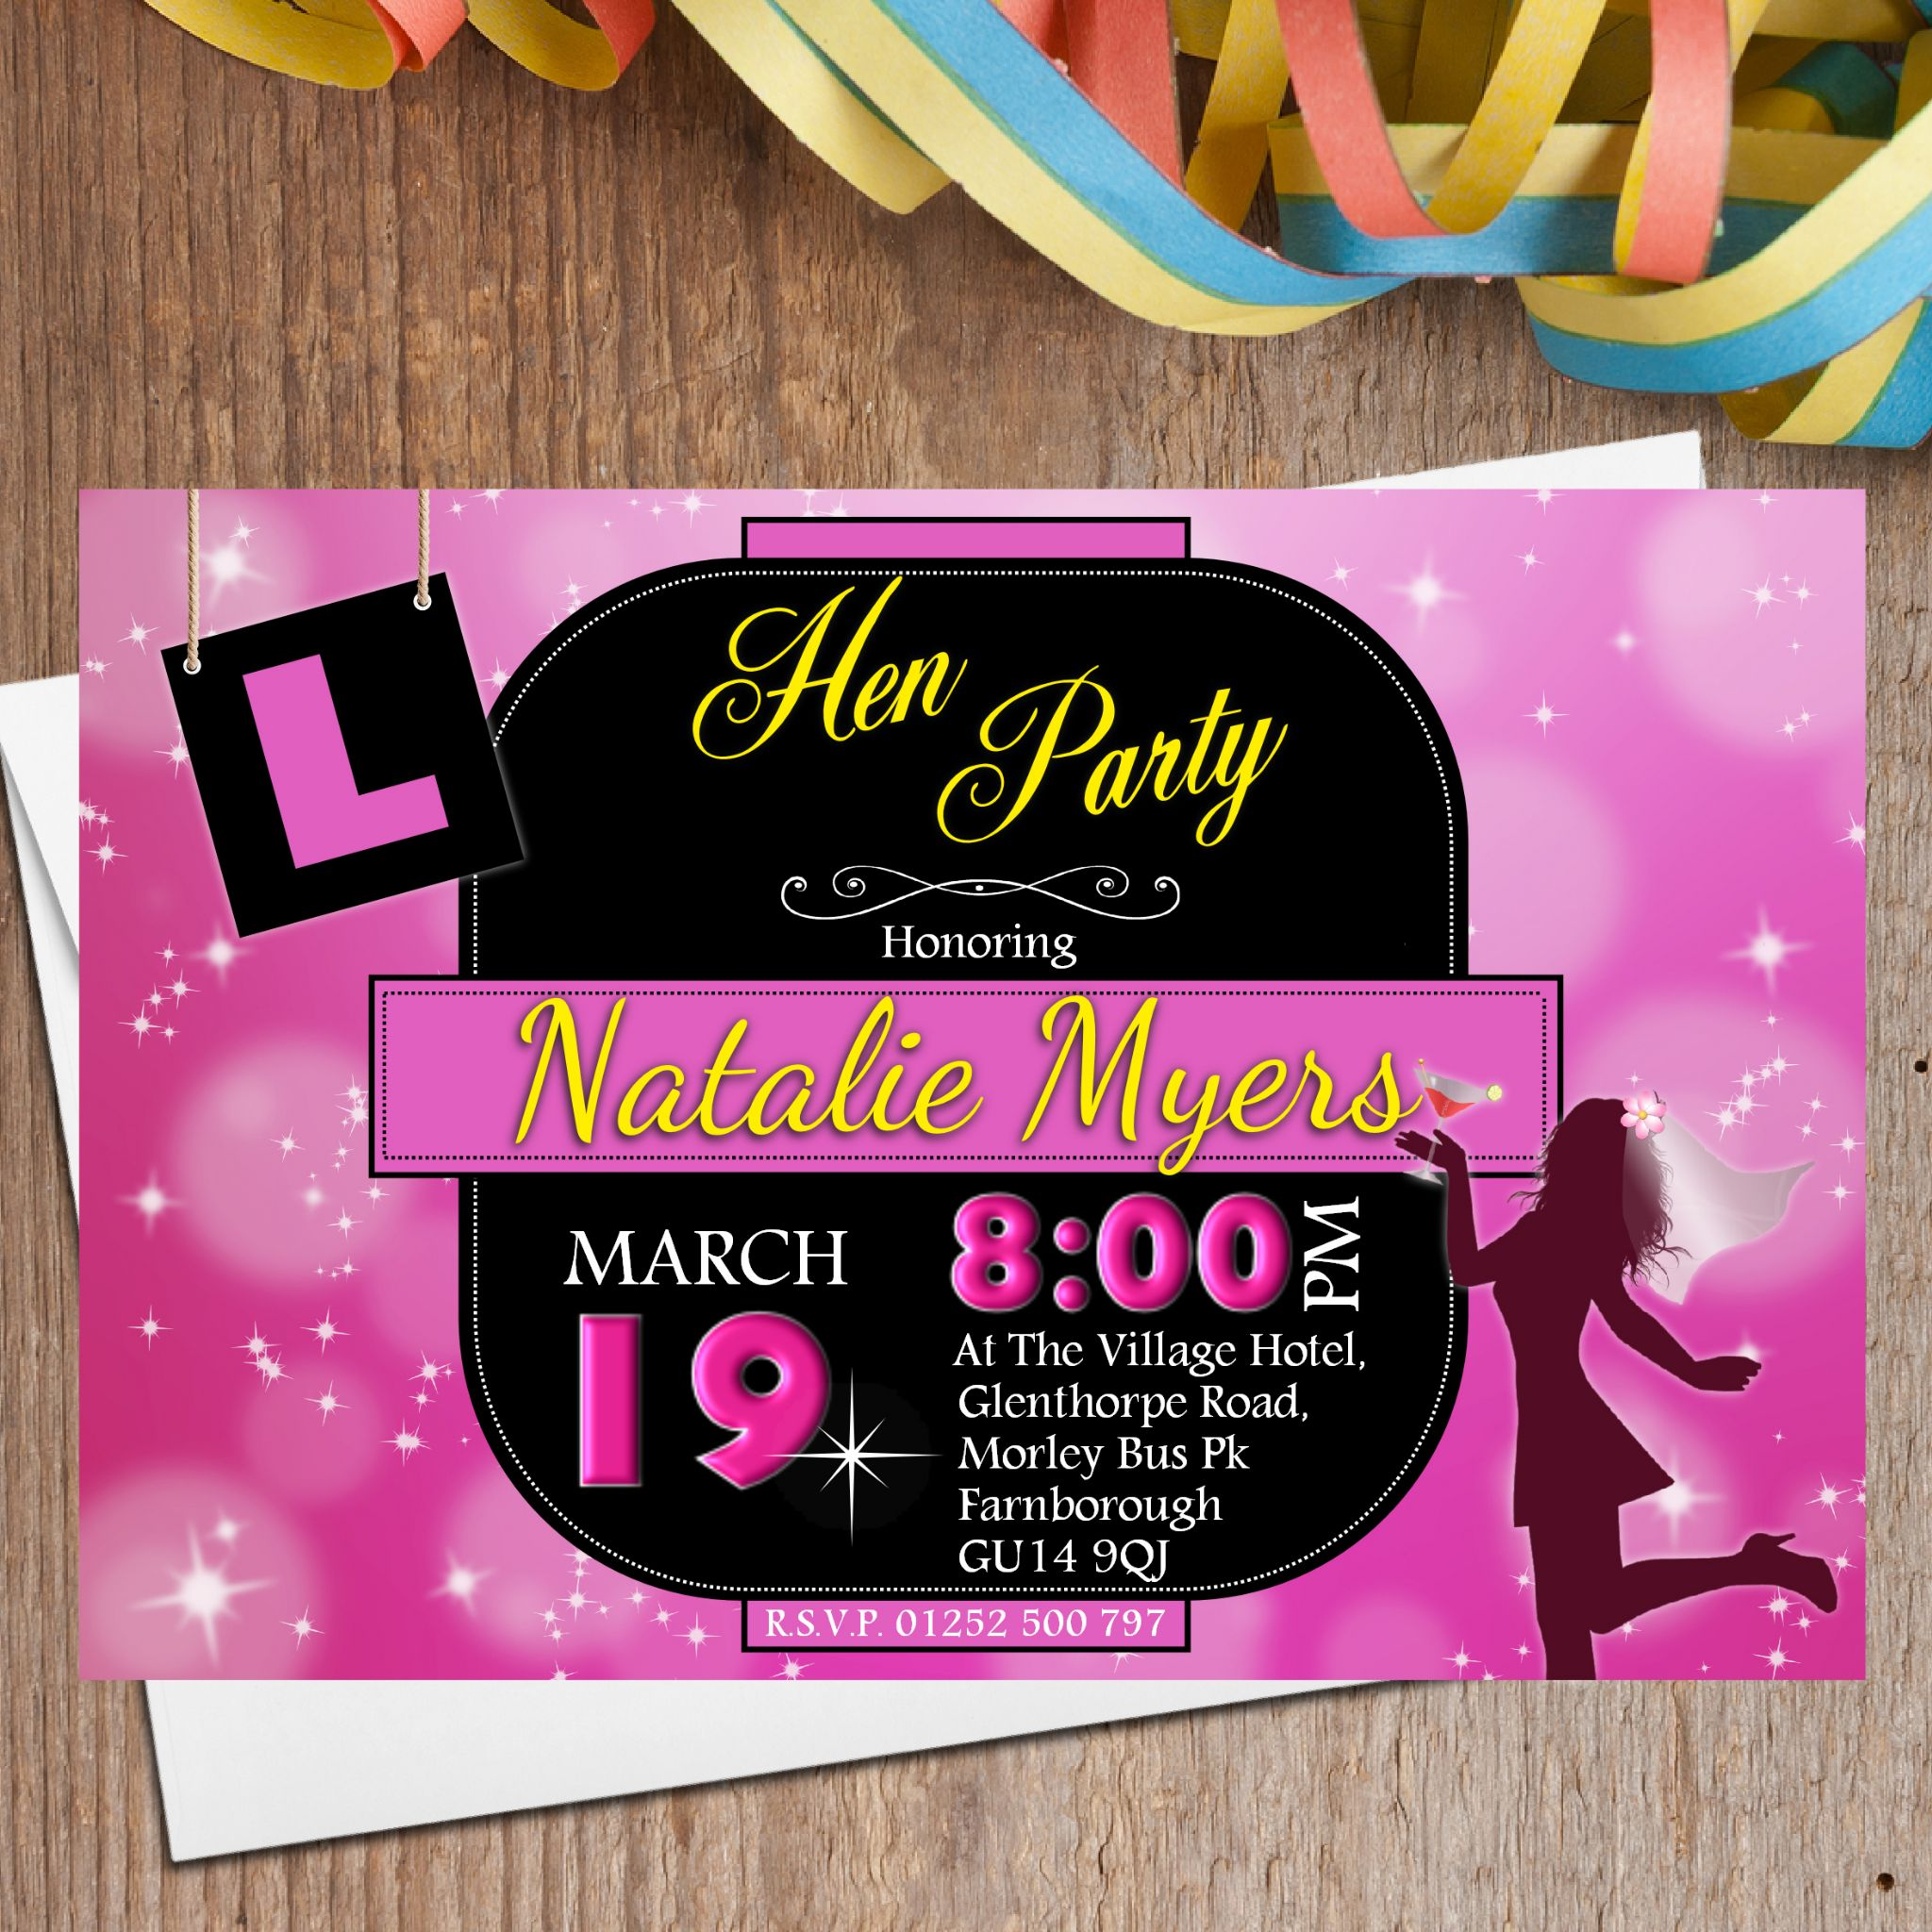 10 Personalised Hen Night Party Invitations Invites N23